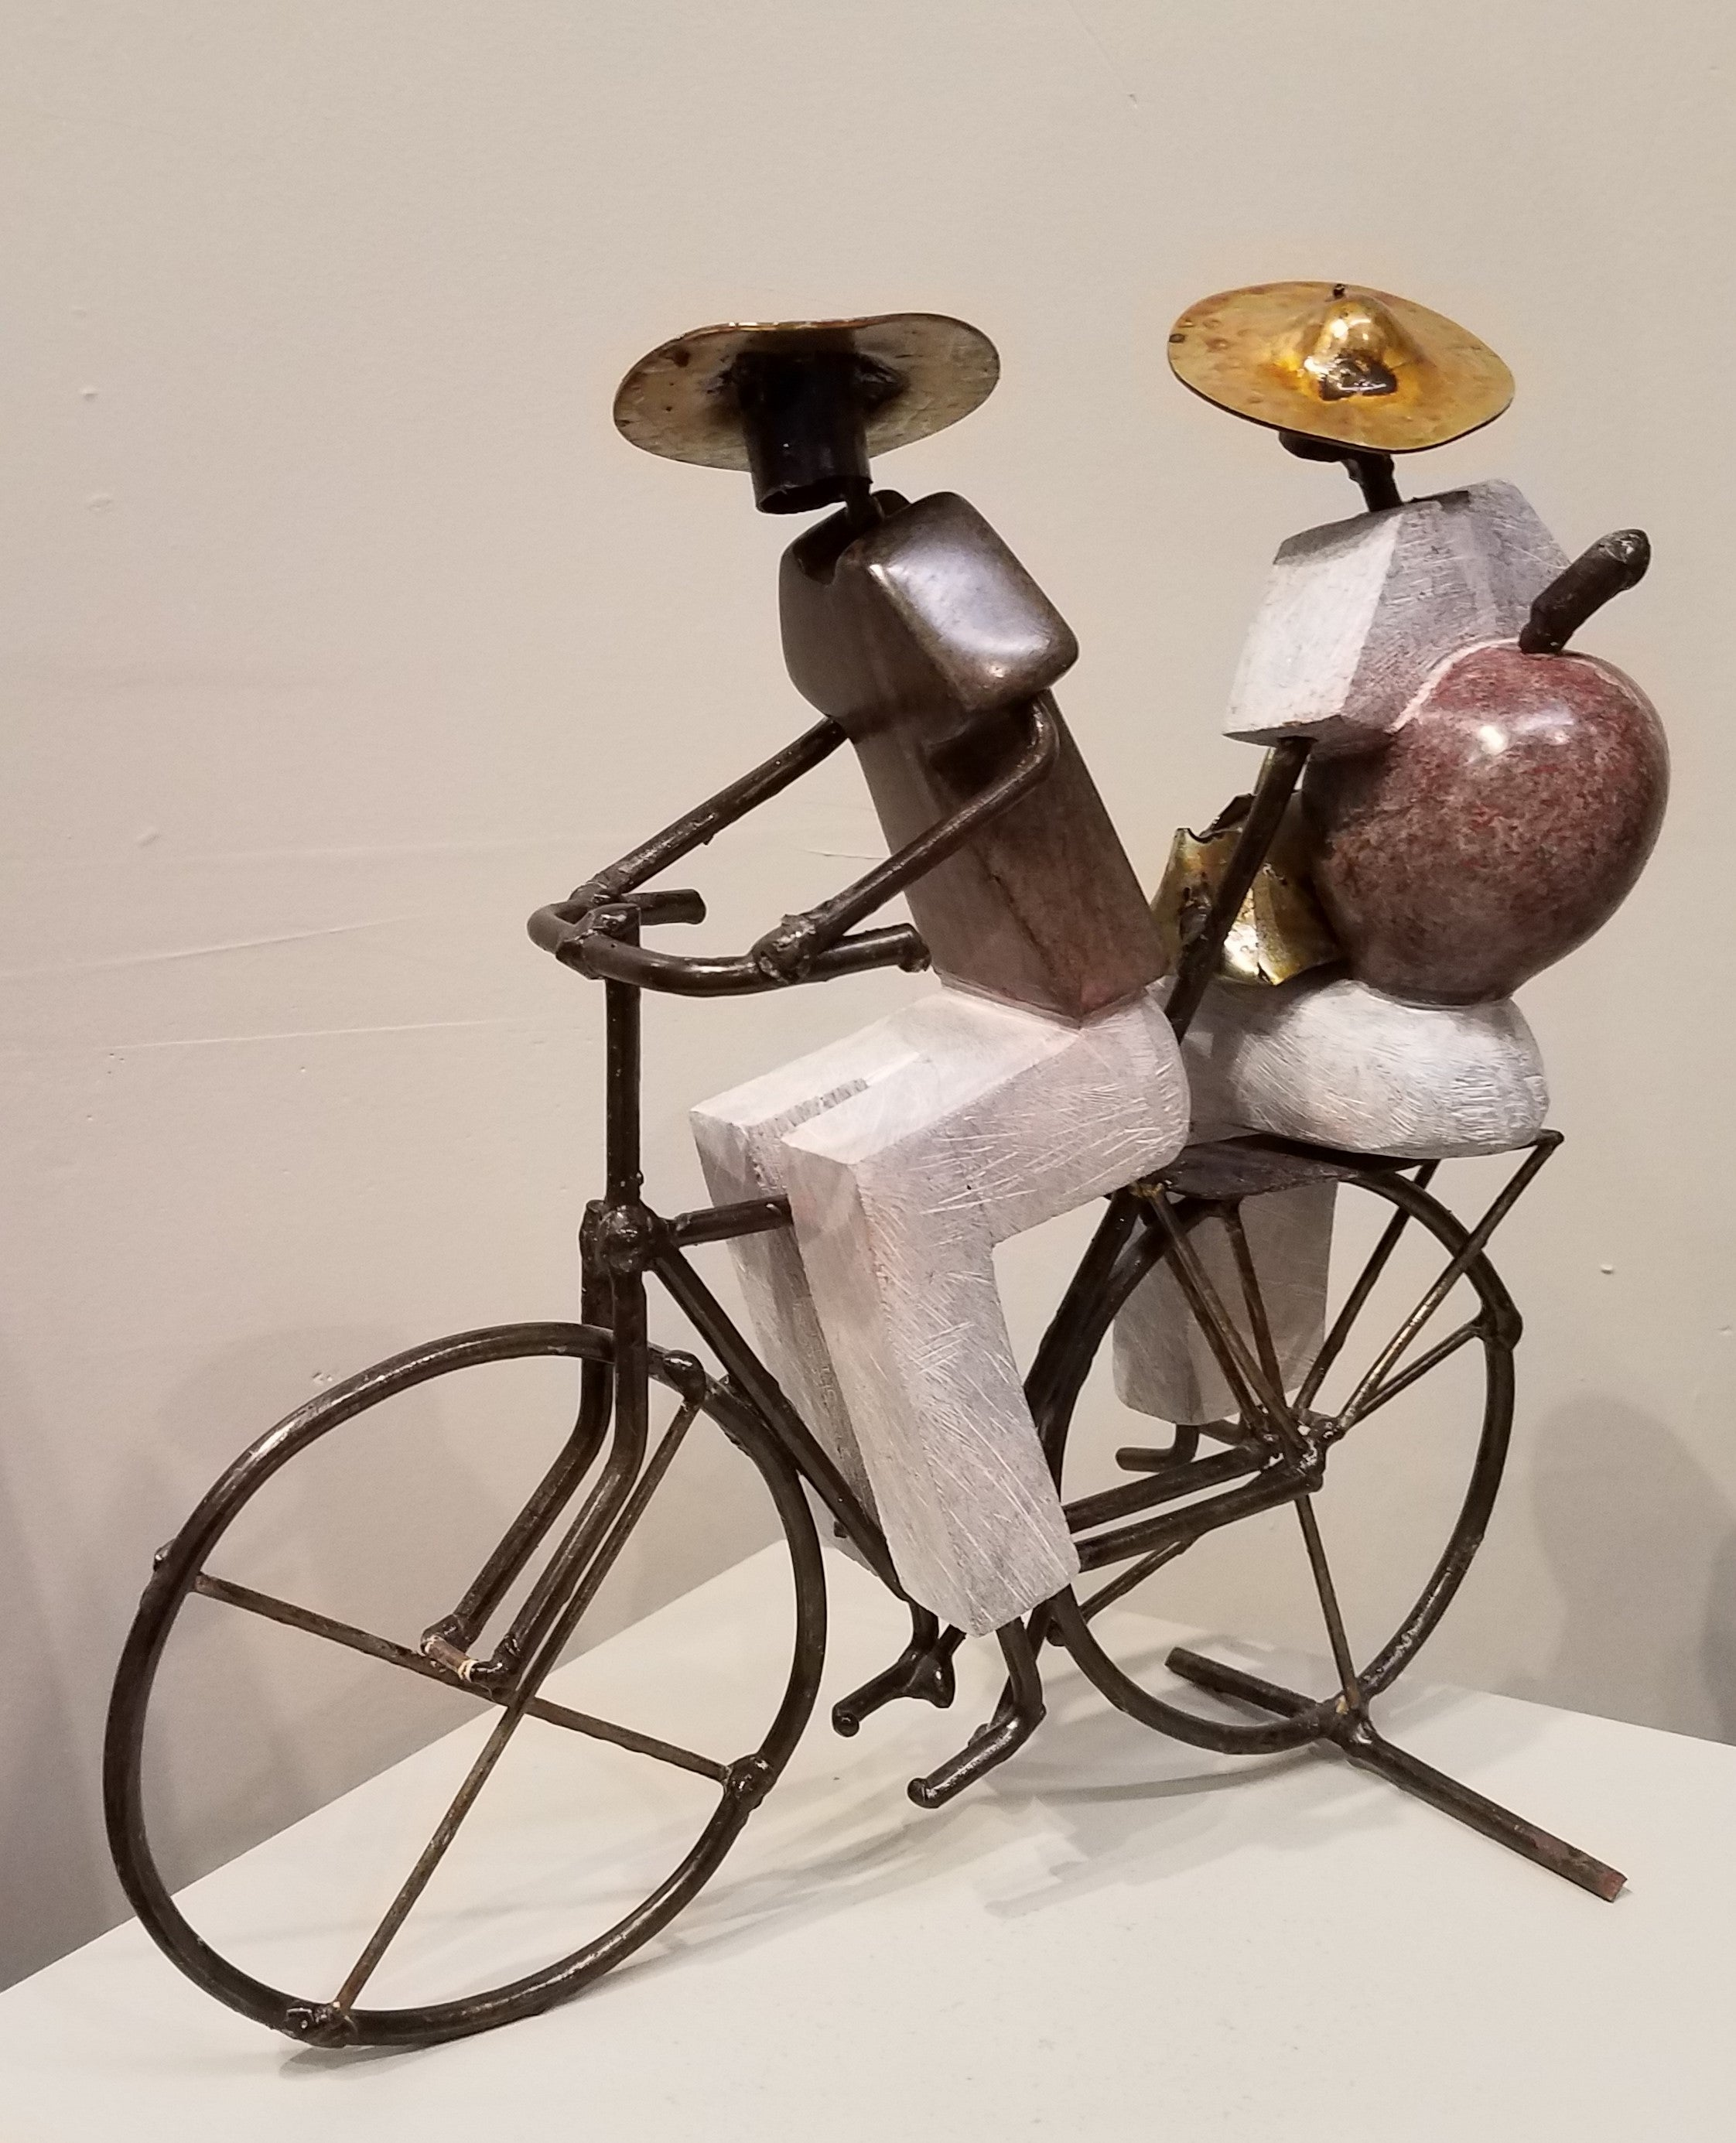 Sculpture of a man riding a bicycle, seated sideways behind him is his wife who has their baby tucked into a towel on her back, typical method in Zimbabwe. It was created from a combination of rapoko stone (a soft serpentine), and metal, in Zimbabwe. The people's bodies are sculpted from stone, and the arms, legs, heads, hats, and bicycle, are all metal, welded and soldered together.